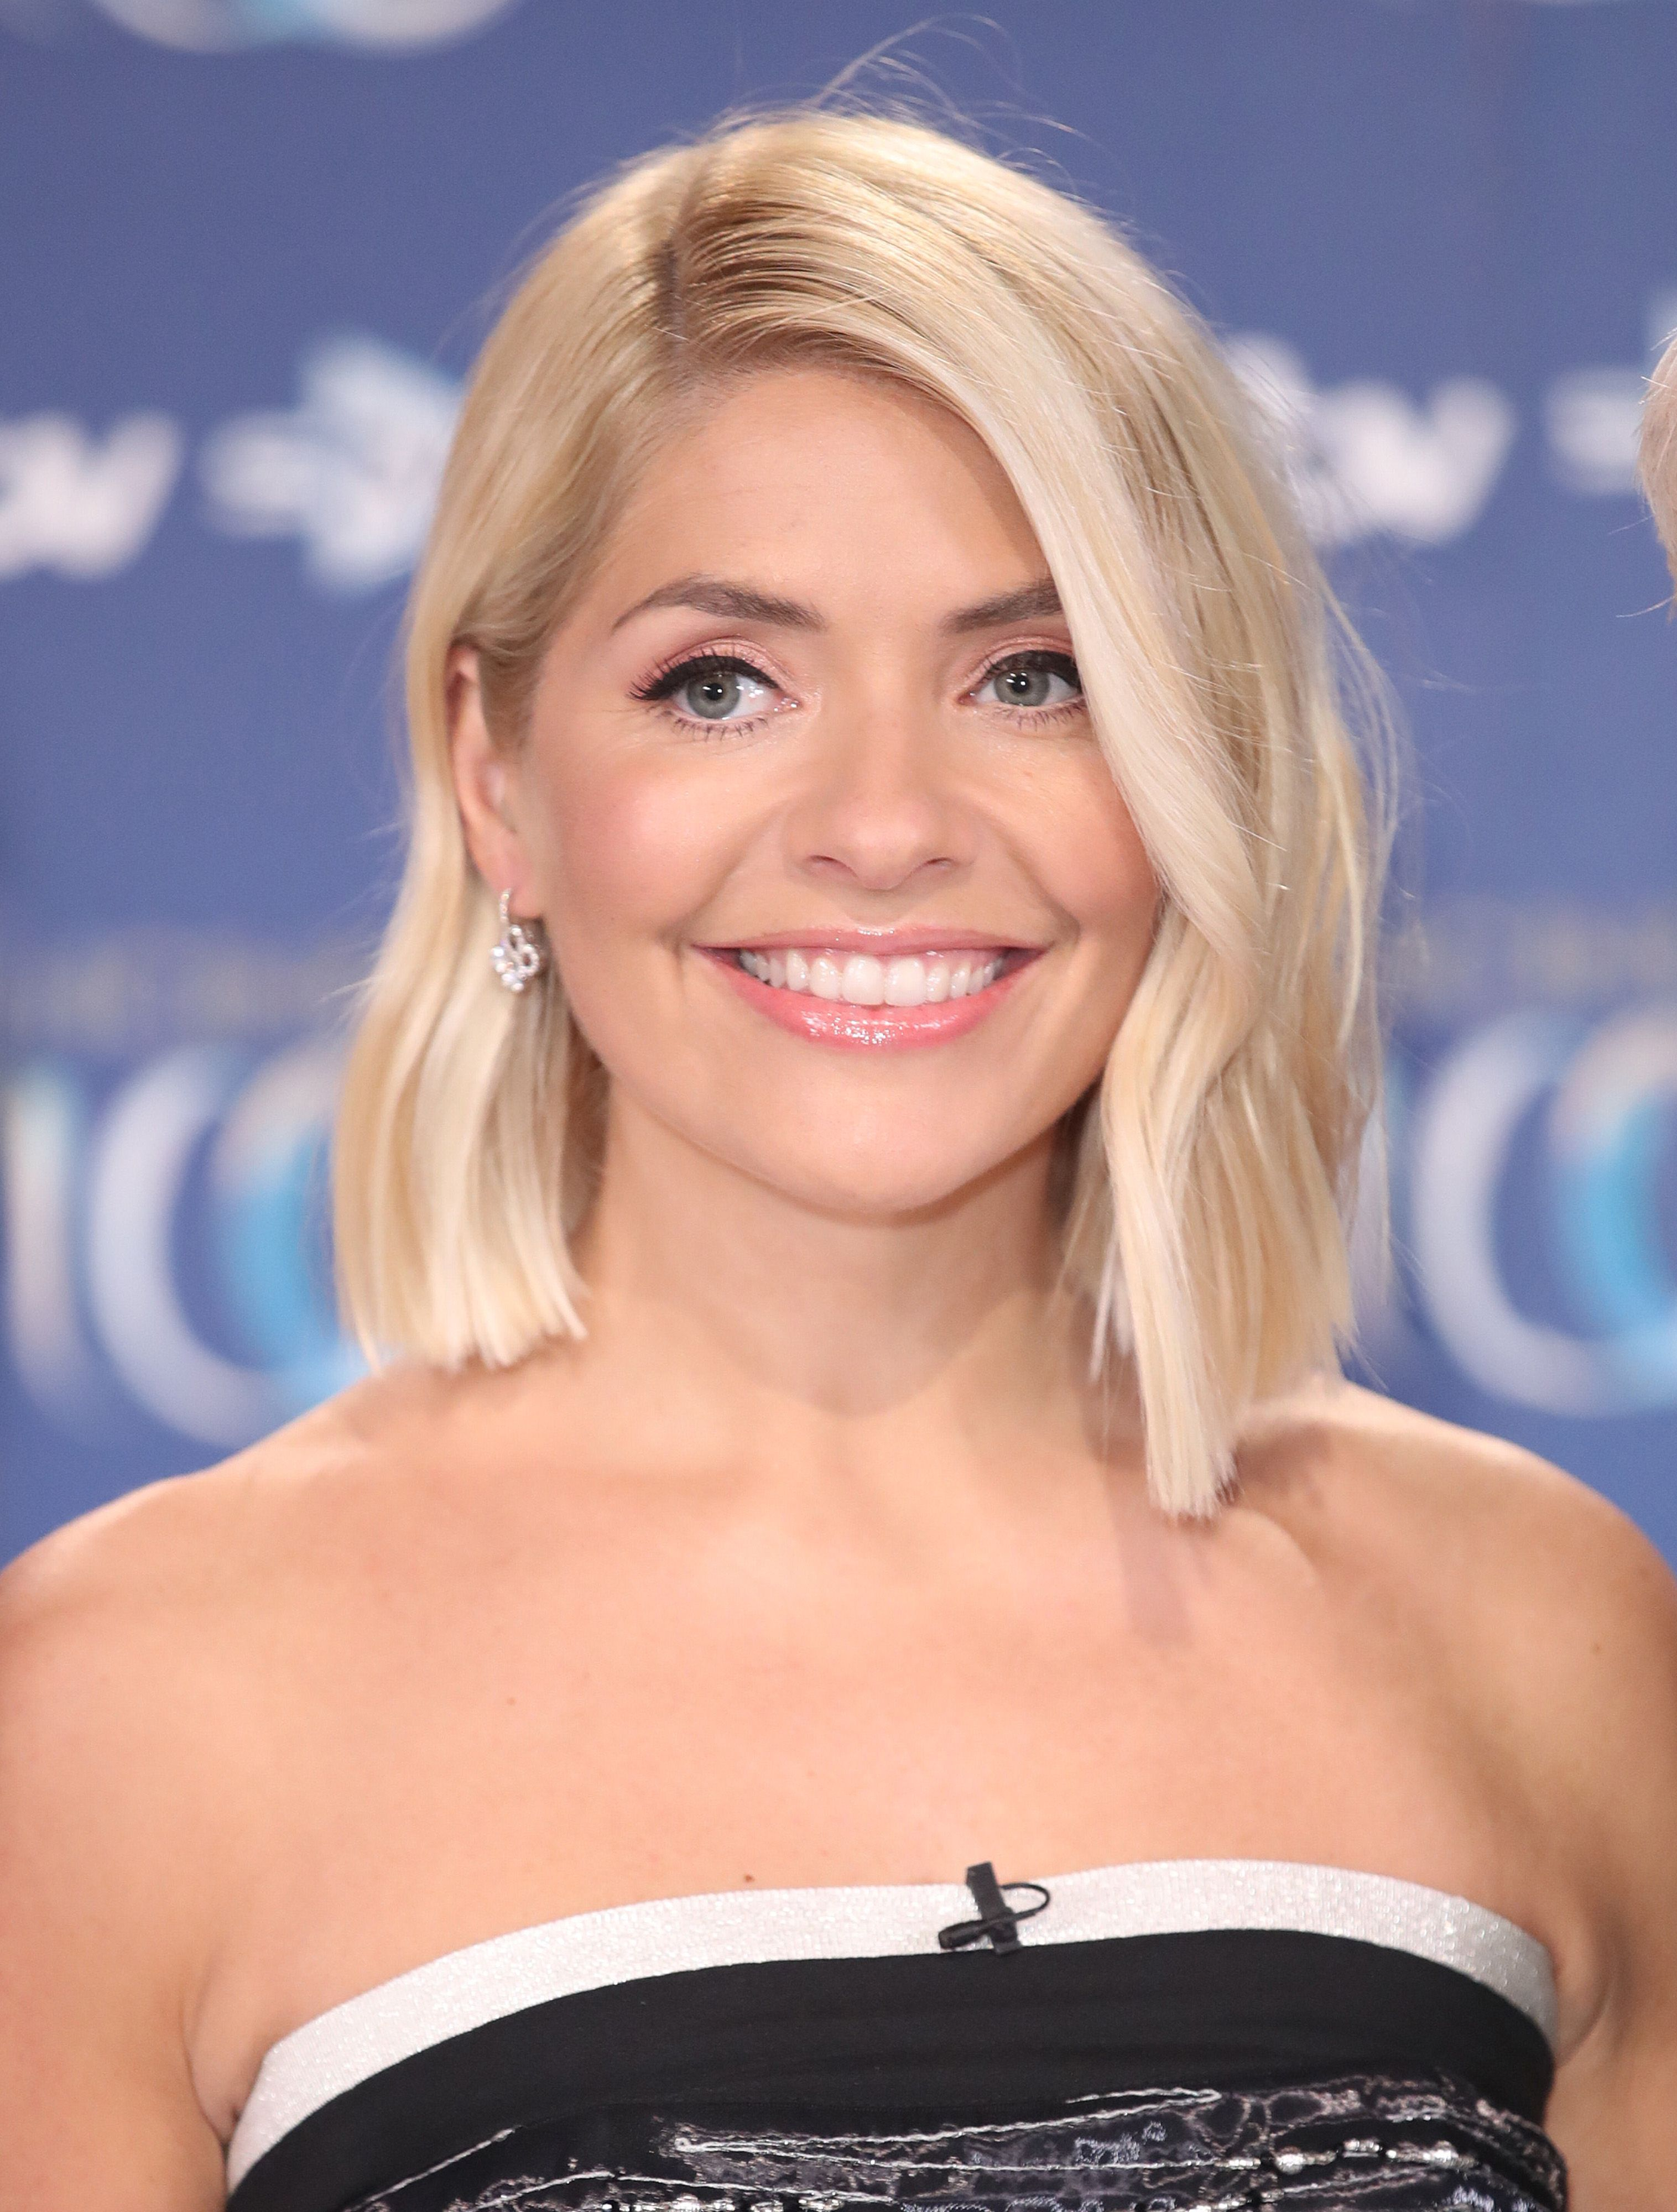 The exact foundation Holly Willoughby uses to get her glow